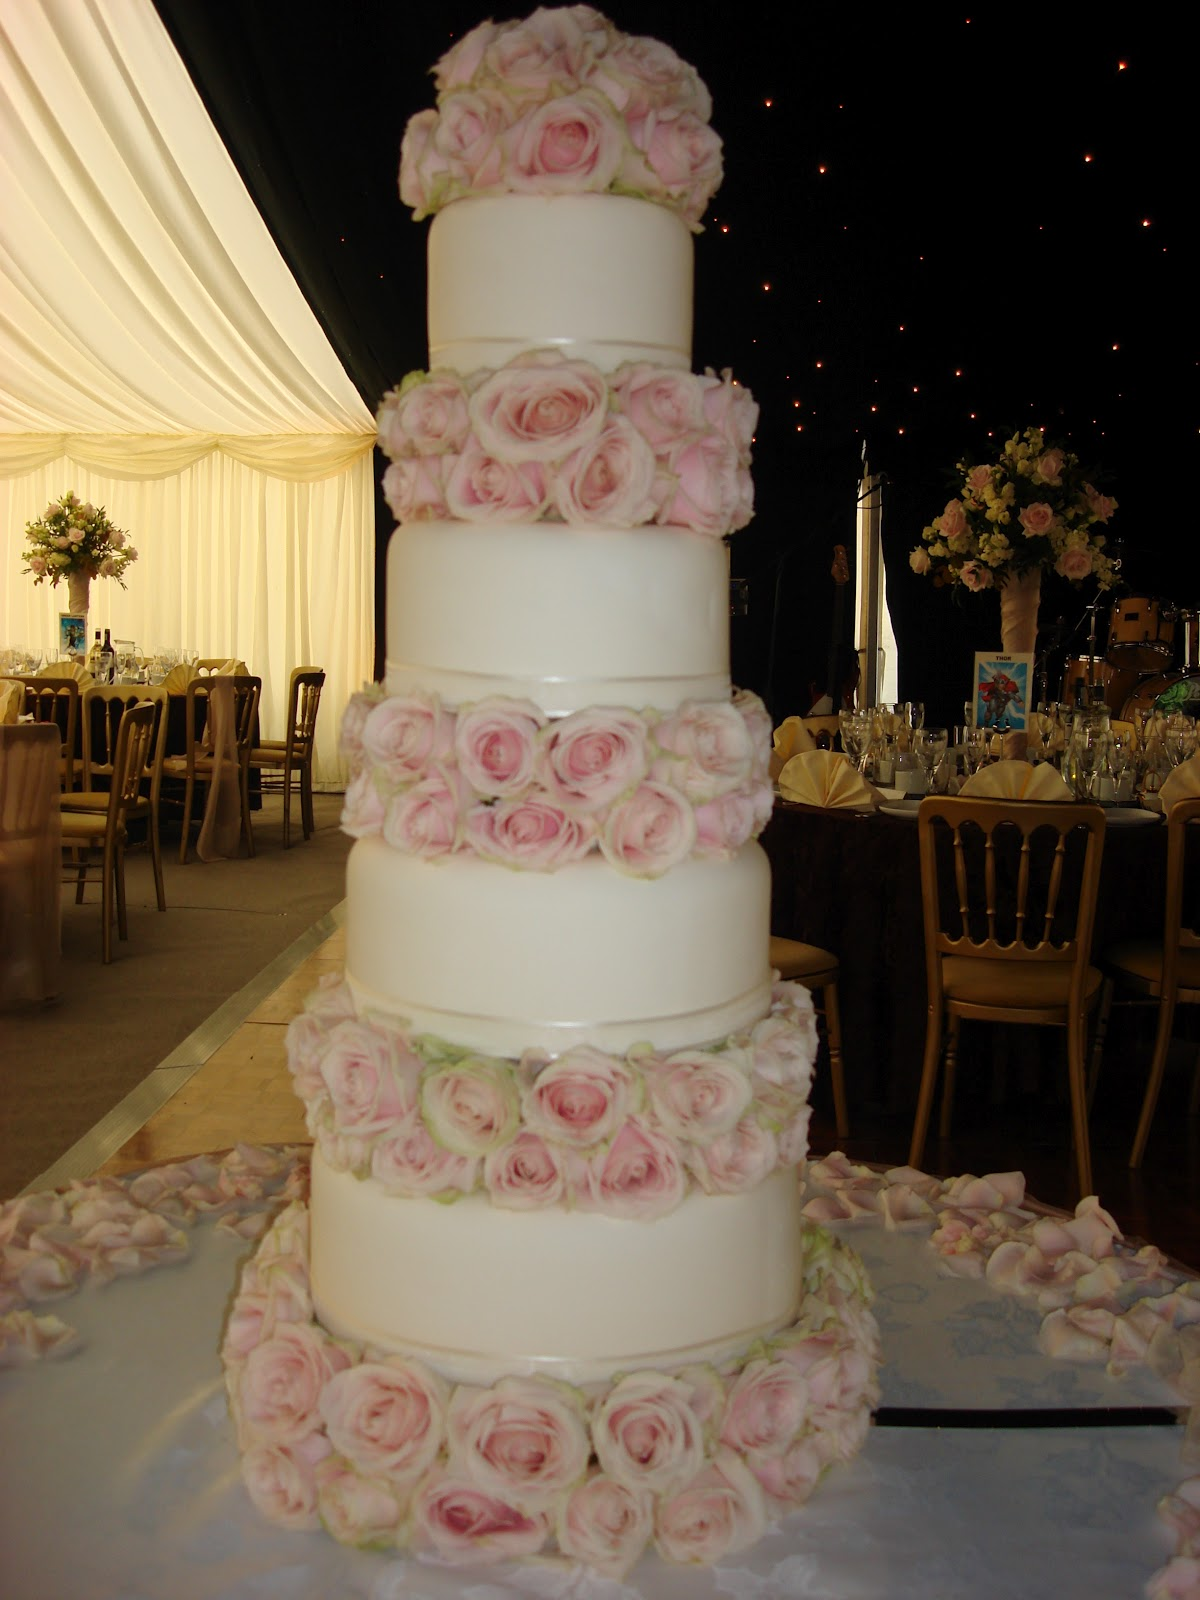 Cake Images Sonia : Blossom Hill: If you are in London and need/want cake...